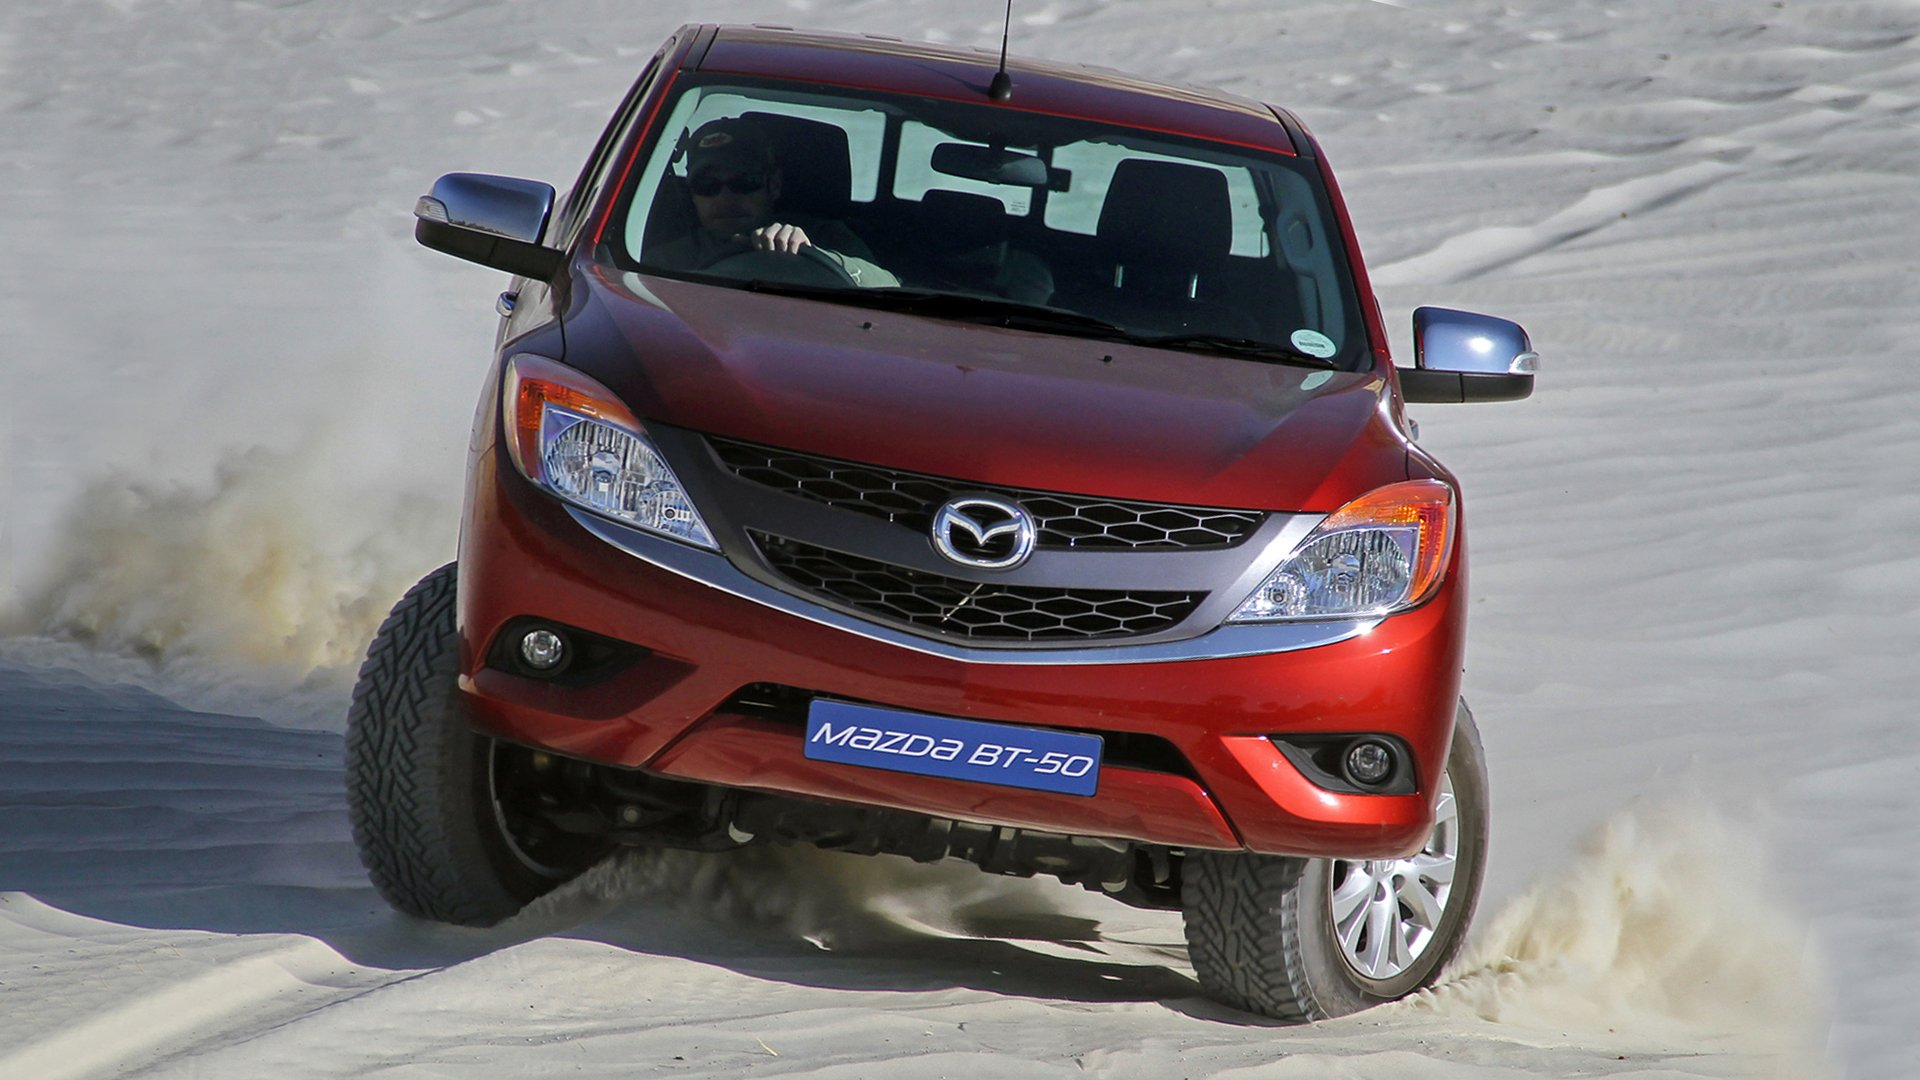 Offroad Mazda BT-50 New HD